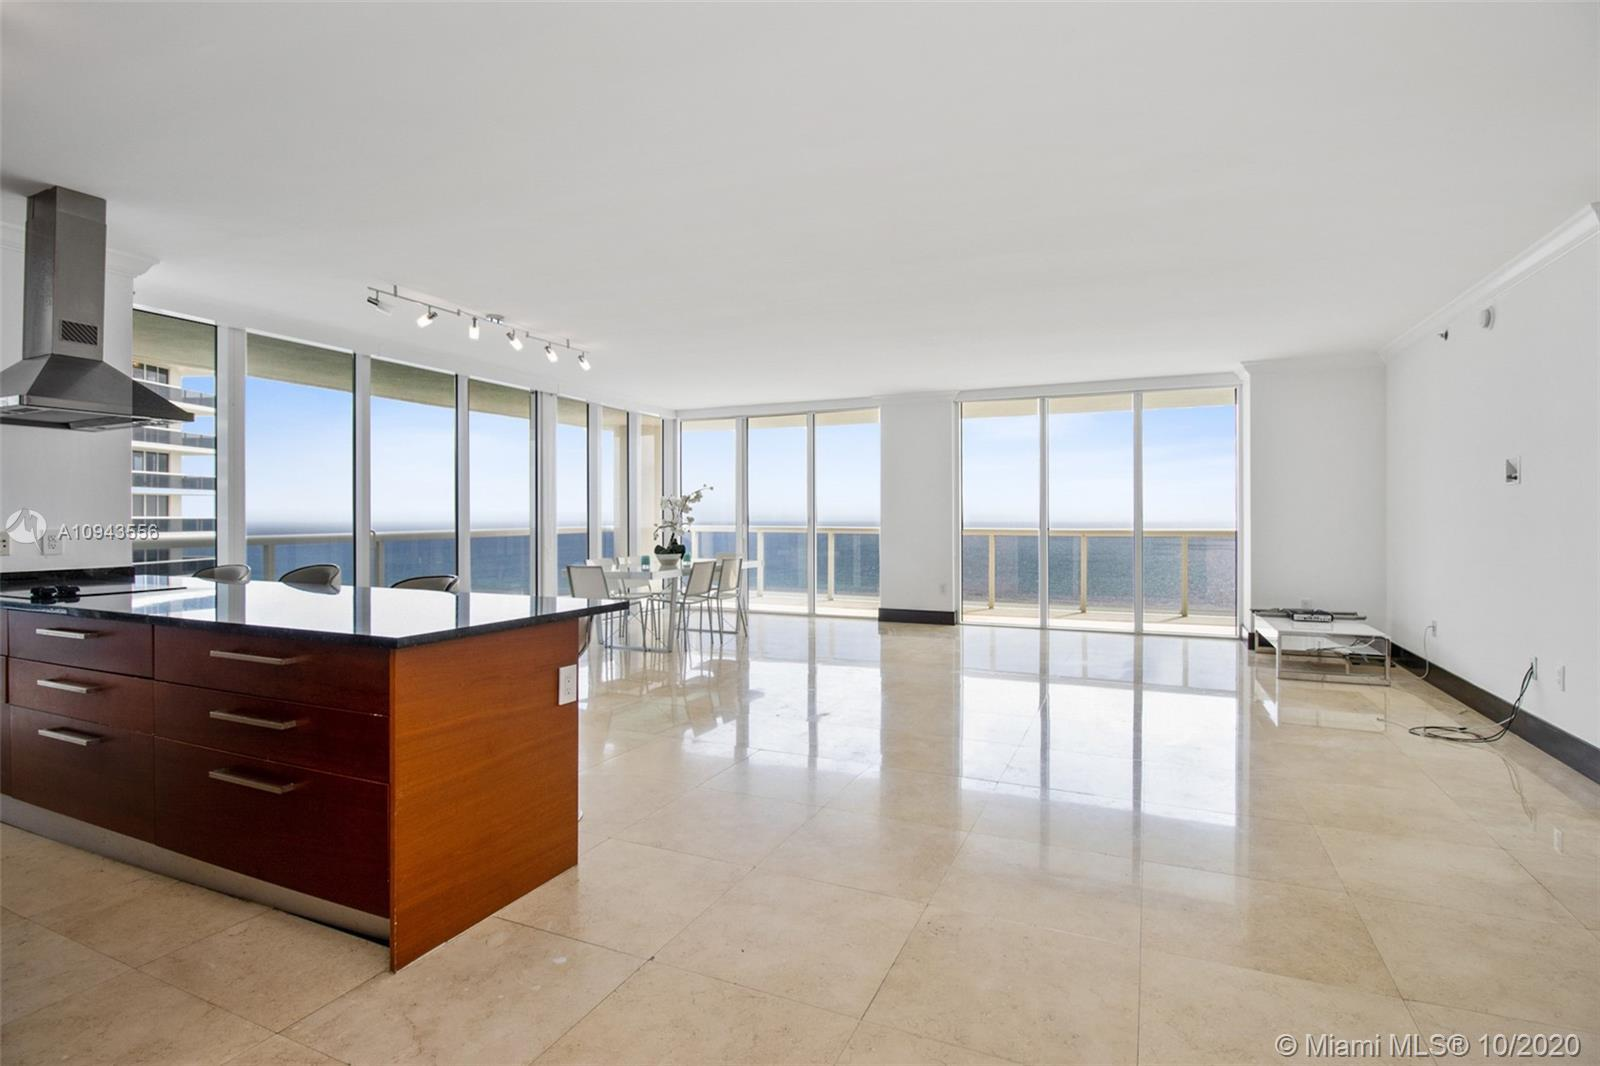 Beautiful corner unit with direct ocean view, wrap around balcony, 3 bed 3.5 bath, model B, marble f